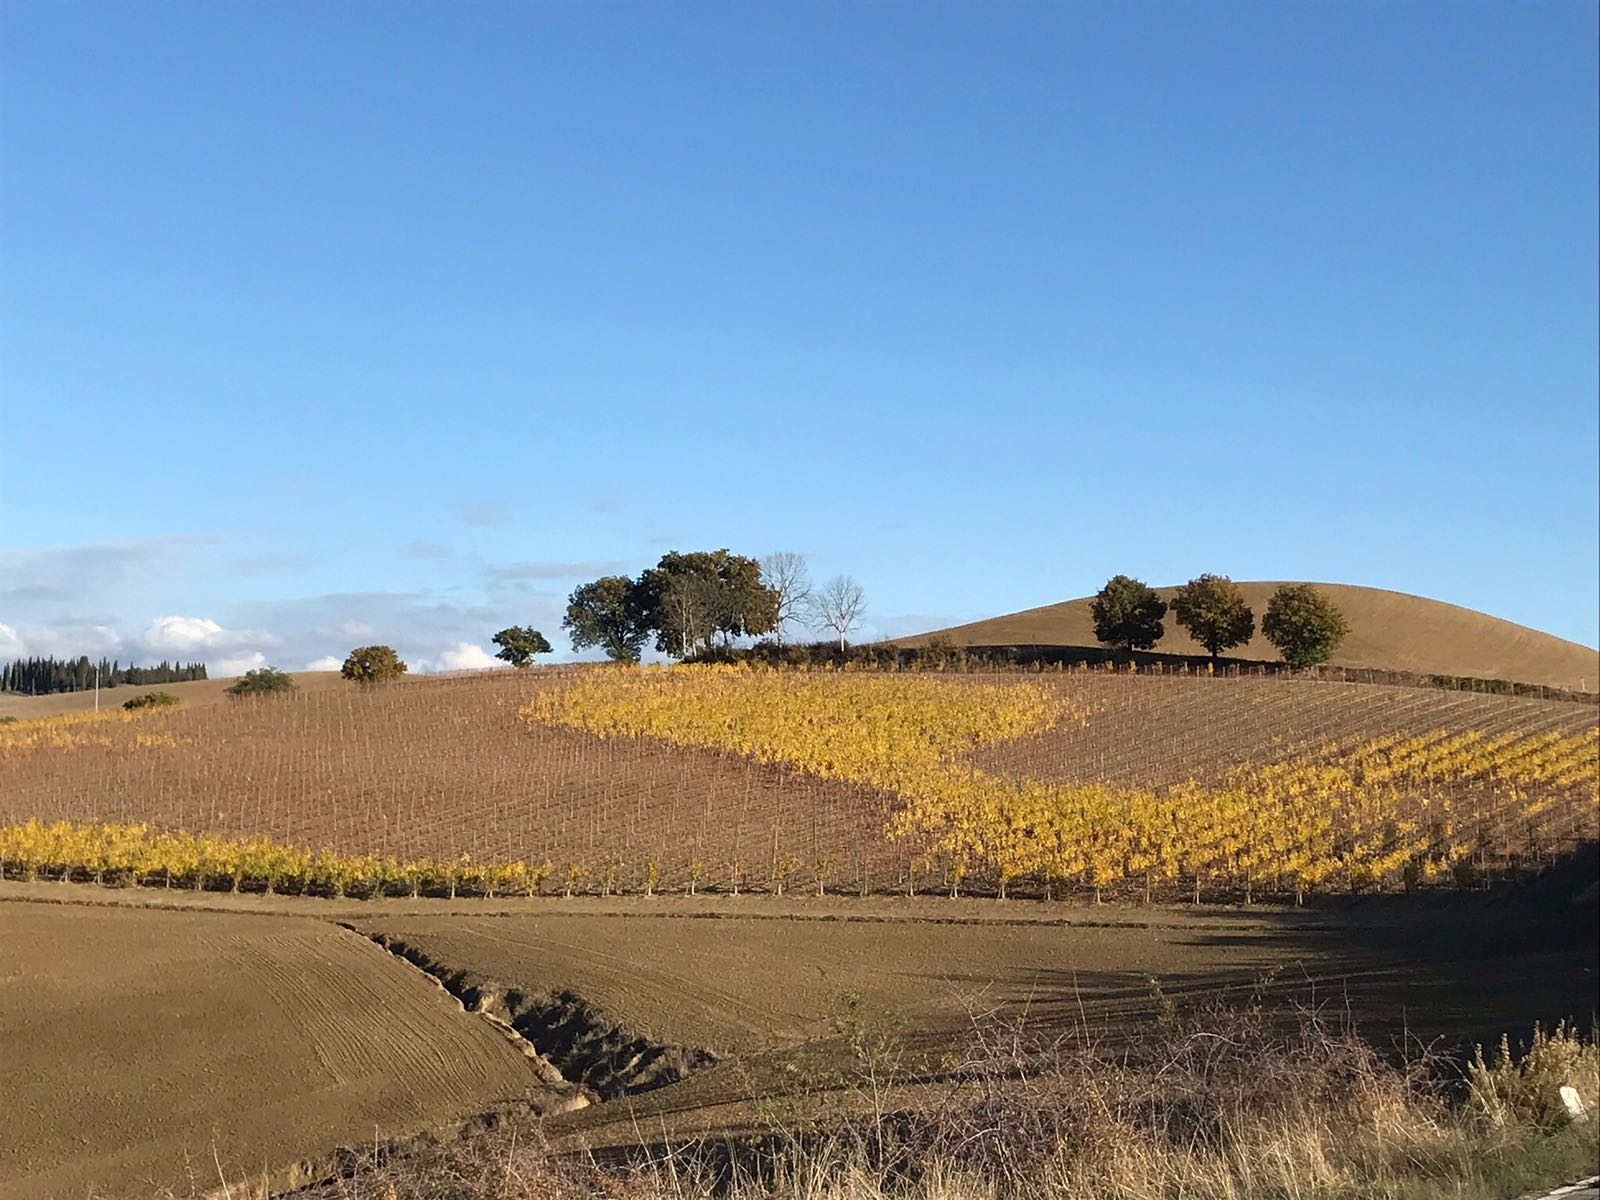 Vineyard in autumn with the leaves fallen off in places leaving large areas of yellow colour